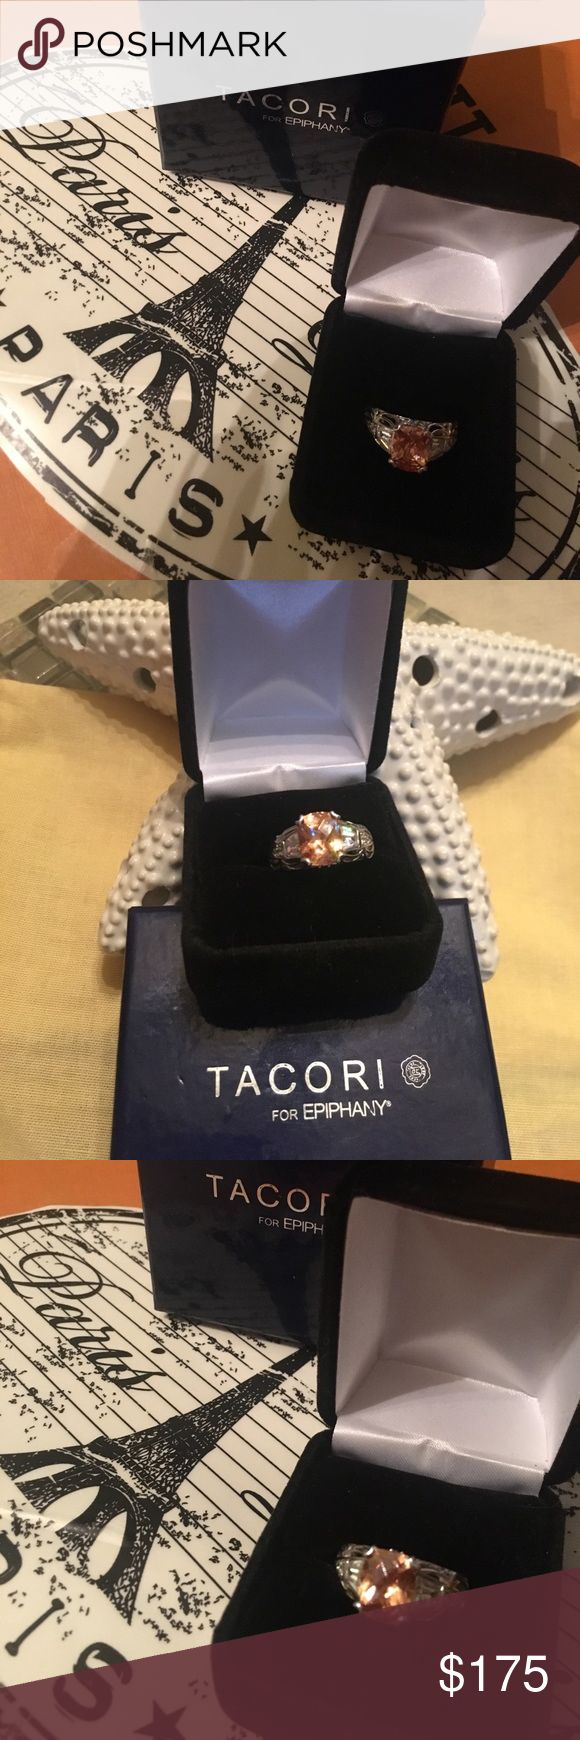 Tacori!!!  Epiphany!!! Gorgeous 925 silver and Platnum clad. Size 7 has Diamonique   Center stone is a large brownish/ orange/gold, side stones are white diamonique.   Simply gorgeous.  Statement ring for sure. Tacori Jewelry Rings